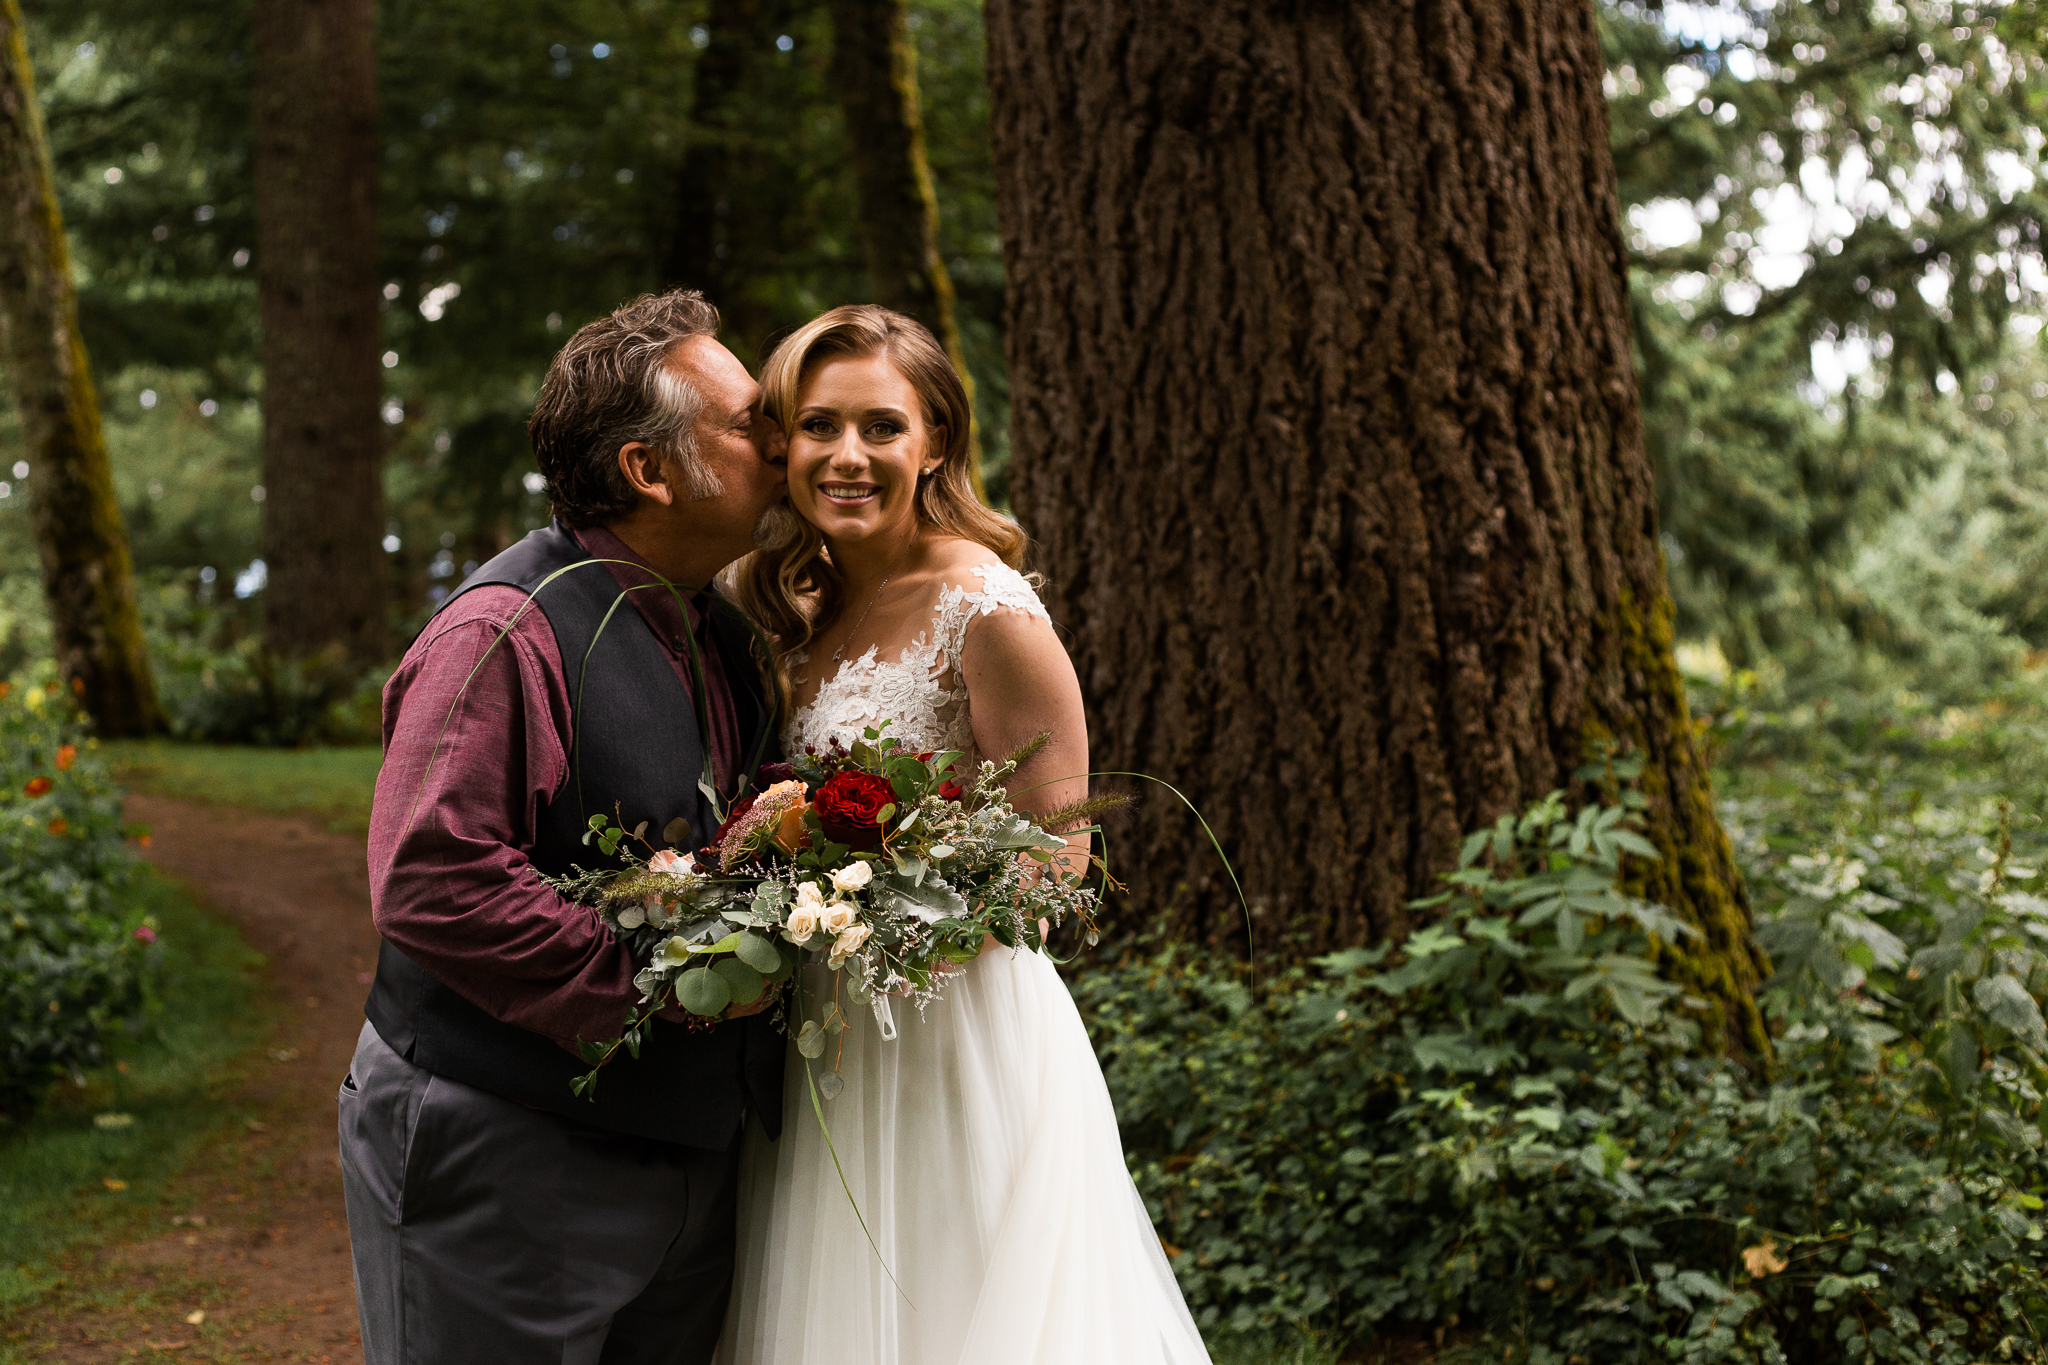 Alayna & Eric - wedding -  Bridal Veil Lakes, OR - Malina Rose Photography-99.jpg